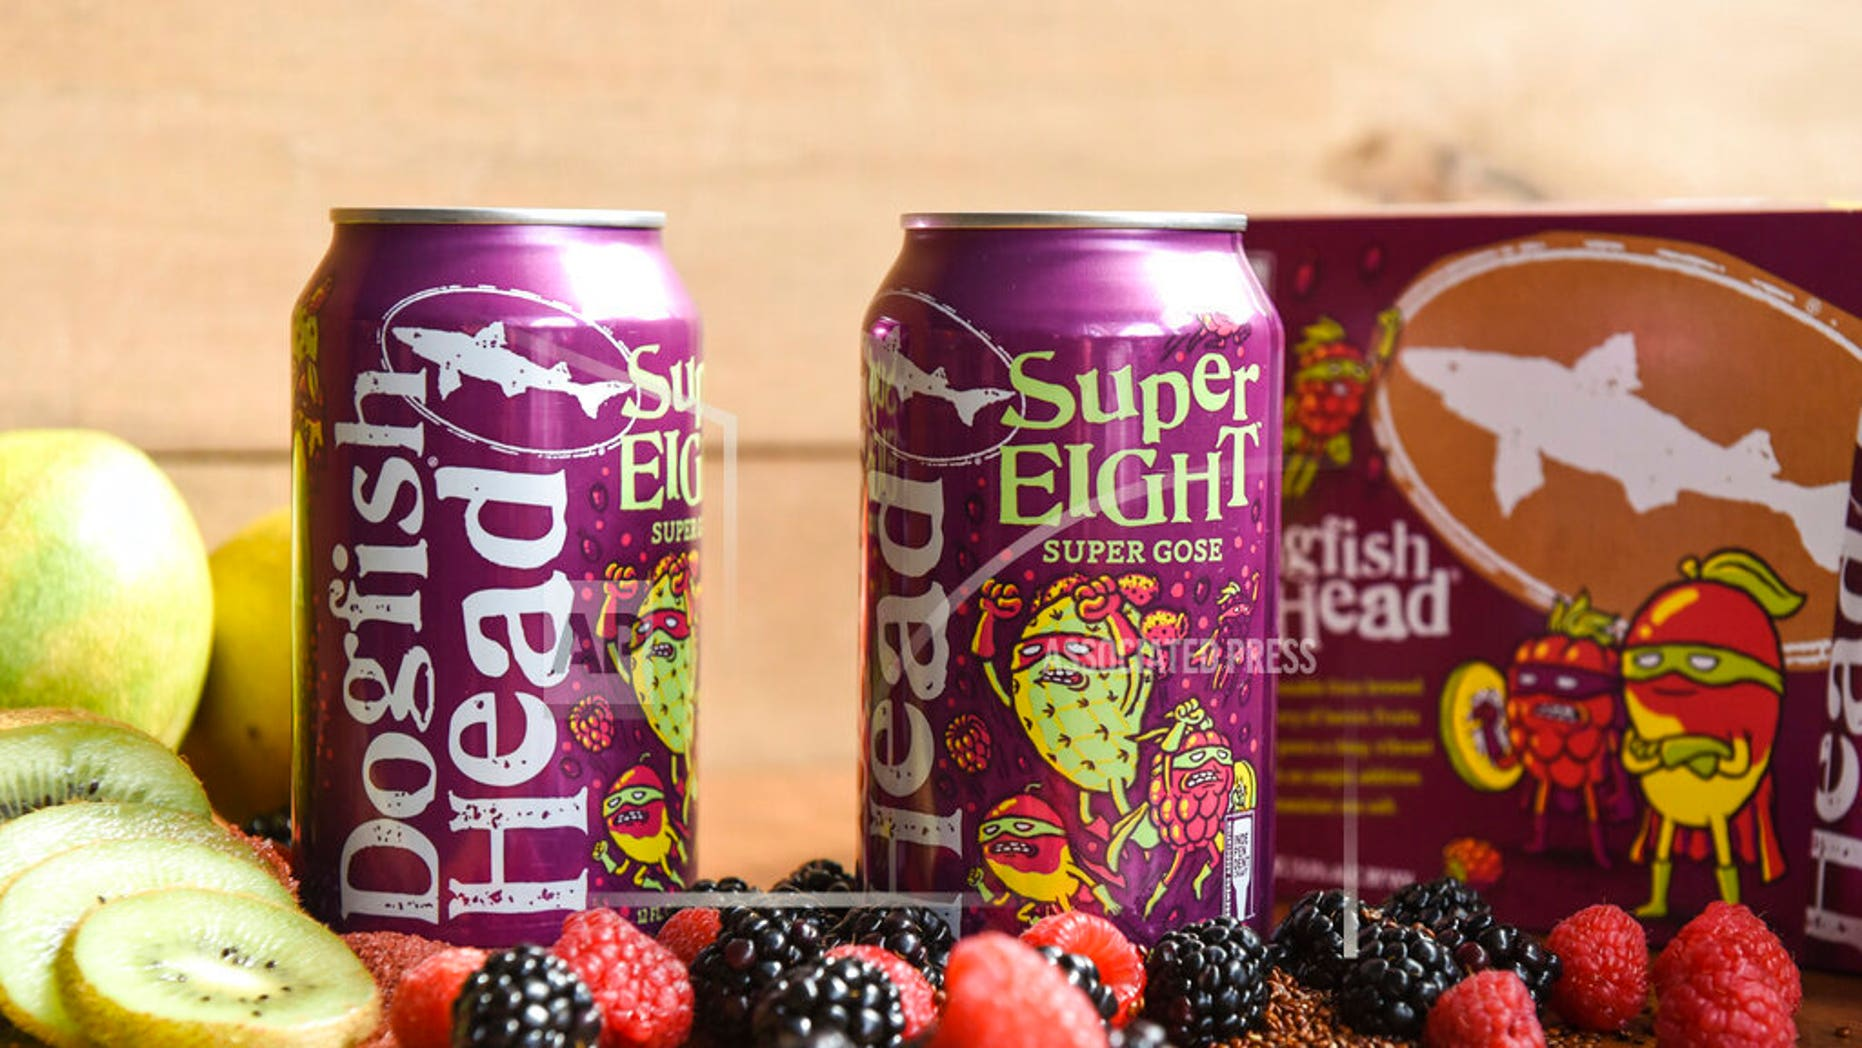 In this undated photo of Dogfish Head Craft Brewery, cans of Superfish beer from Dogfish are displayed on a table in Milton, Del. The new beer coming onto the market can be used for the development of its Super 8 film. Delaware's Dogfish Head Craft Brewery created their SuperEIGHT beer following a conversation with the people of Kodak, the renowned New York-based technology company famed for its photographic roots. (Dogfish Head Craft Brewery on AP)